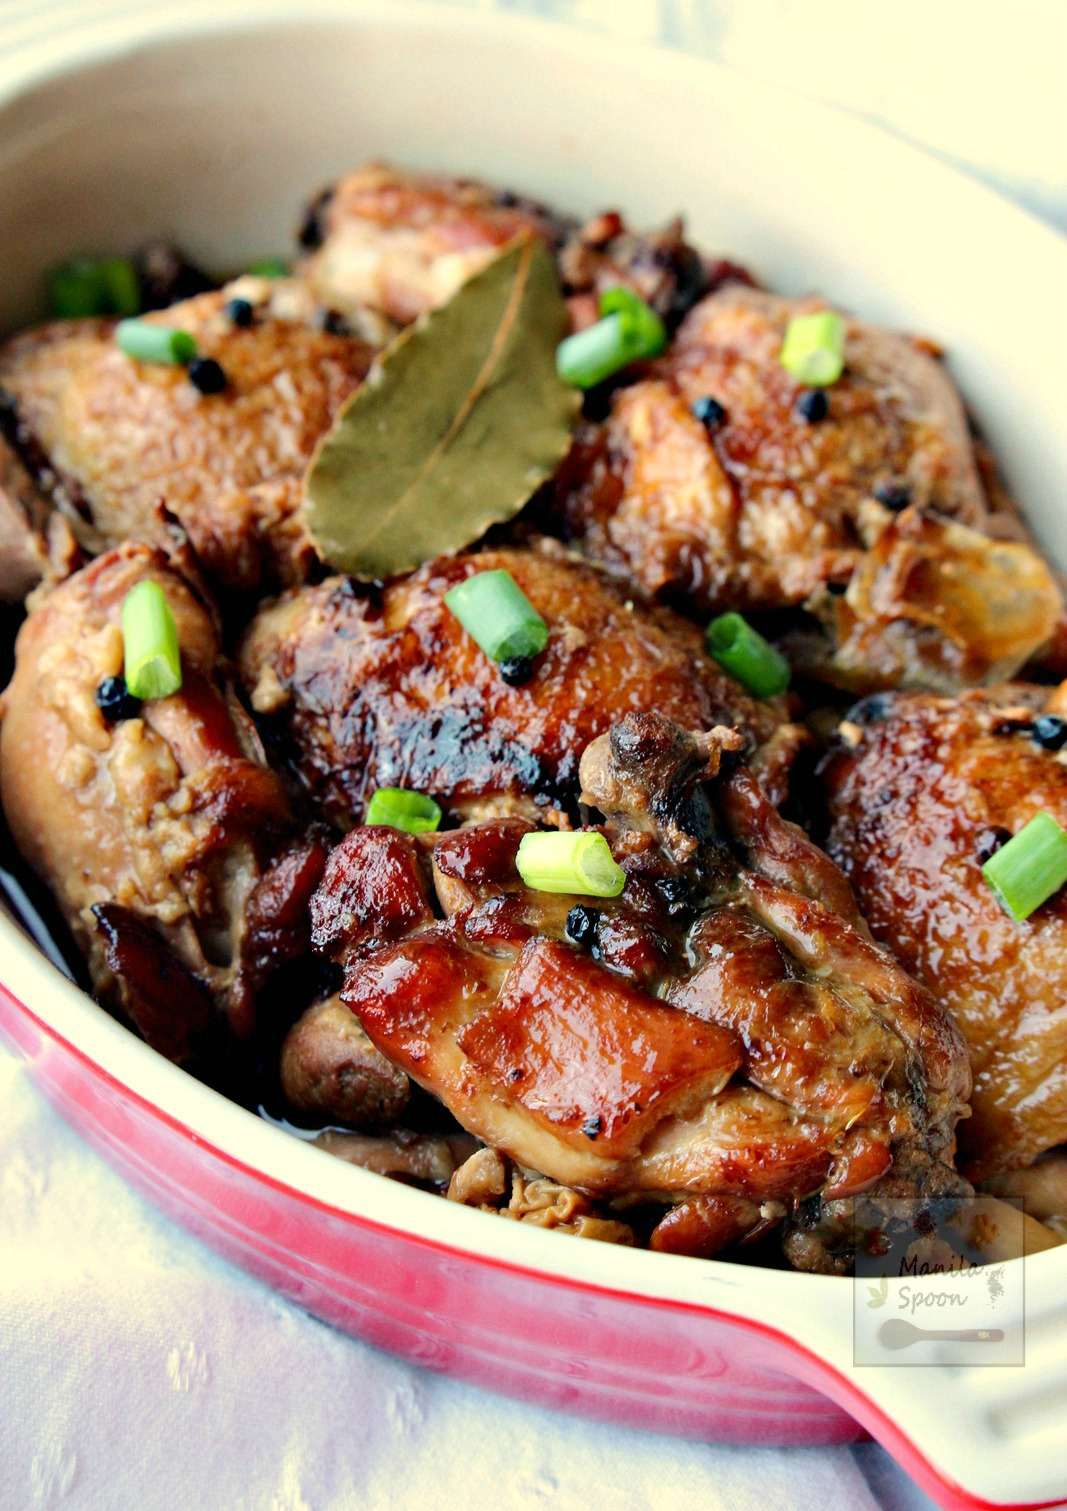 12 Tried And Tested Savory Slow Cooker Recipes Manila Spoon